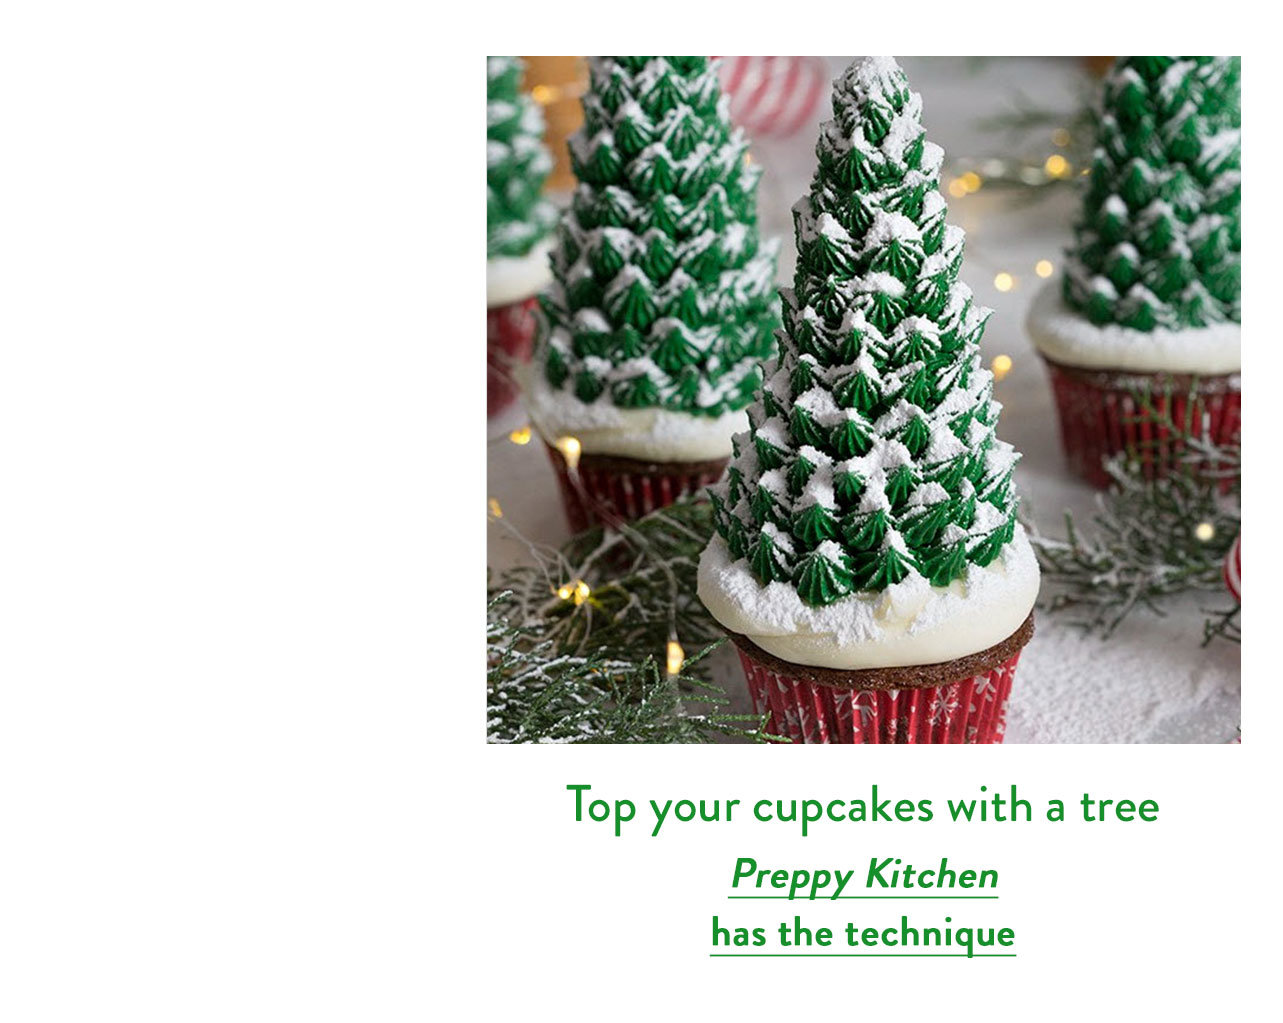 Top your cupcakes with a tree